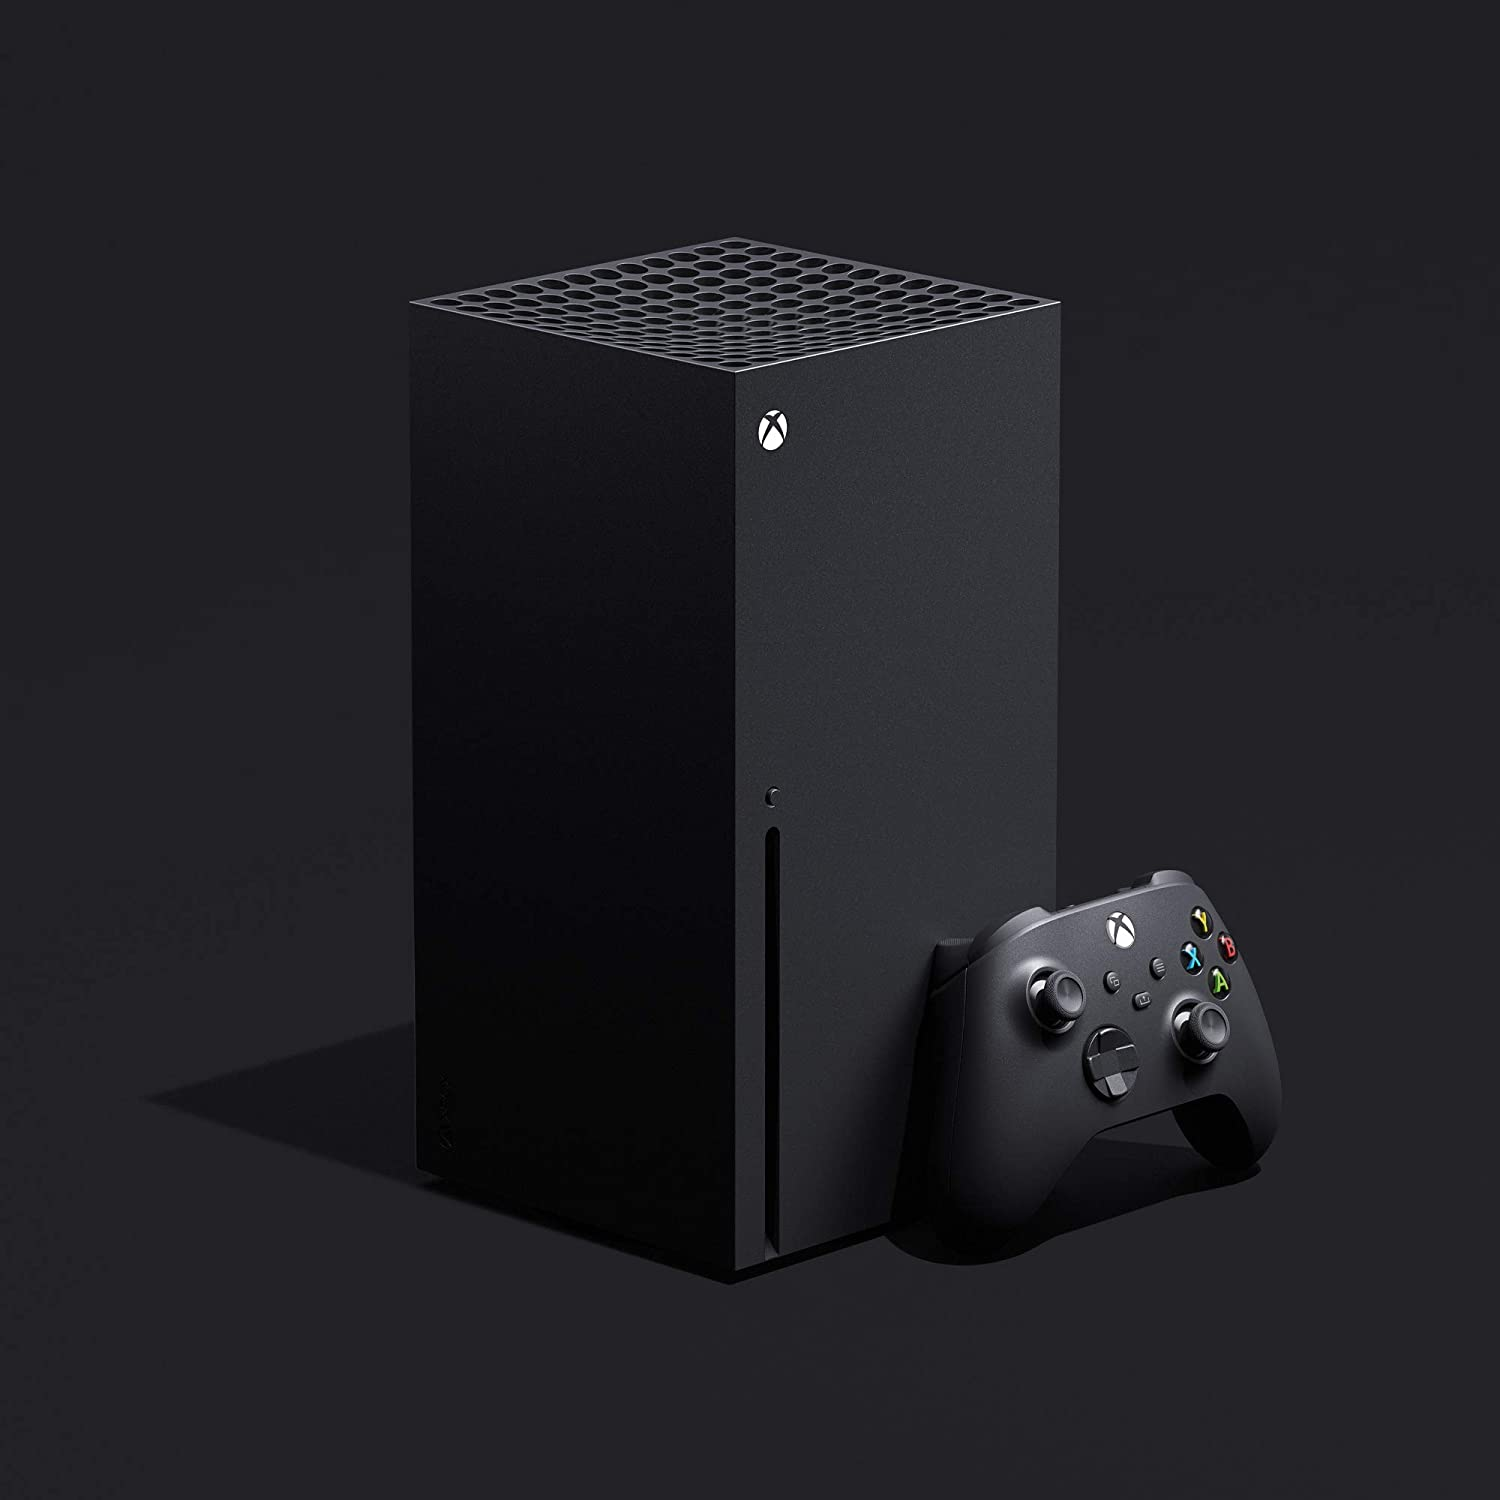 Xbox Series X - Designed to Power Your Dreams